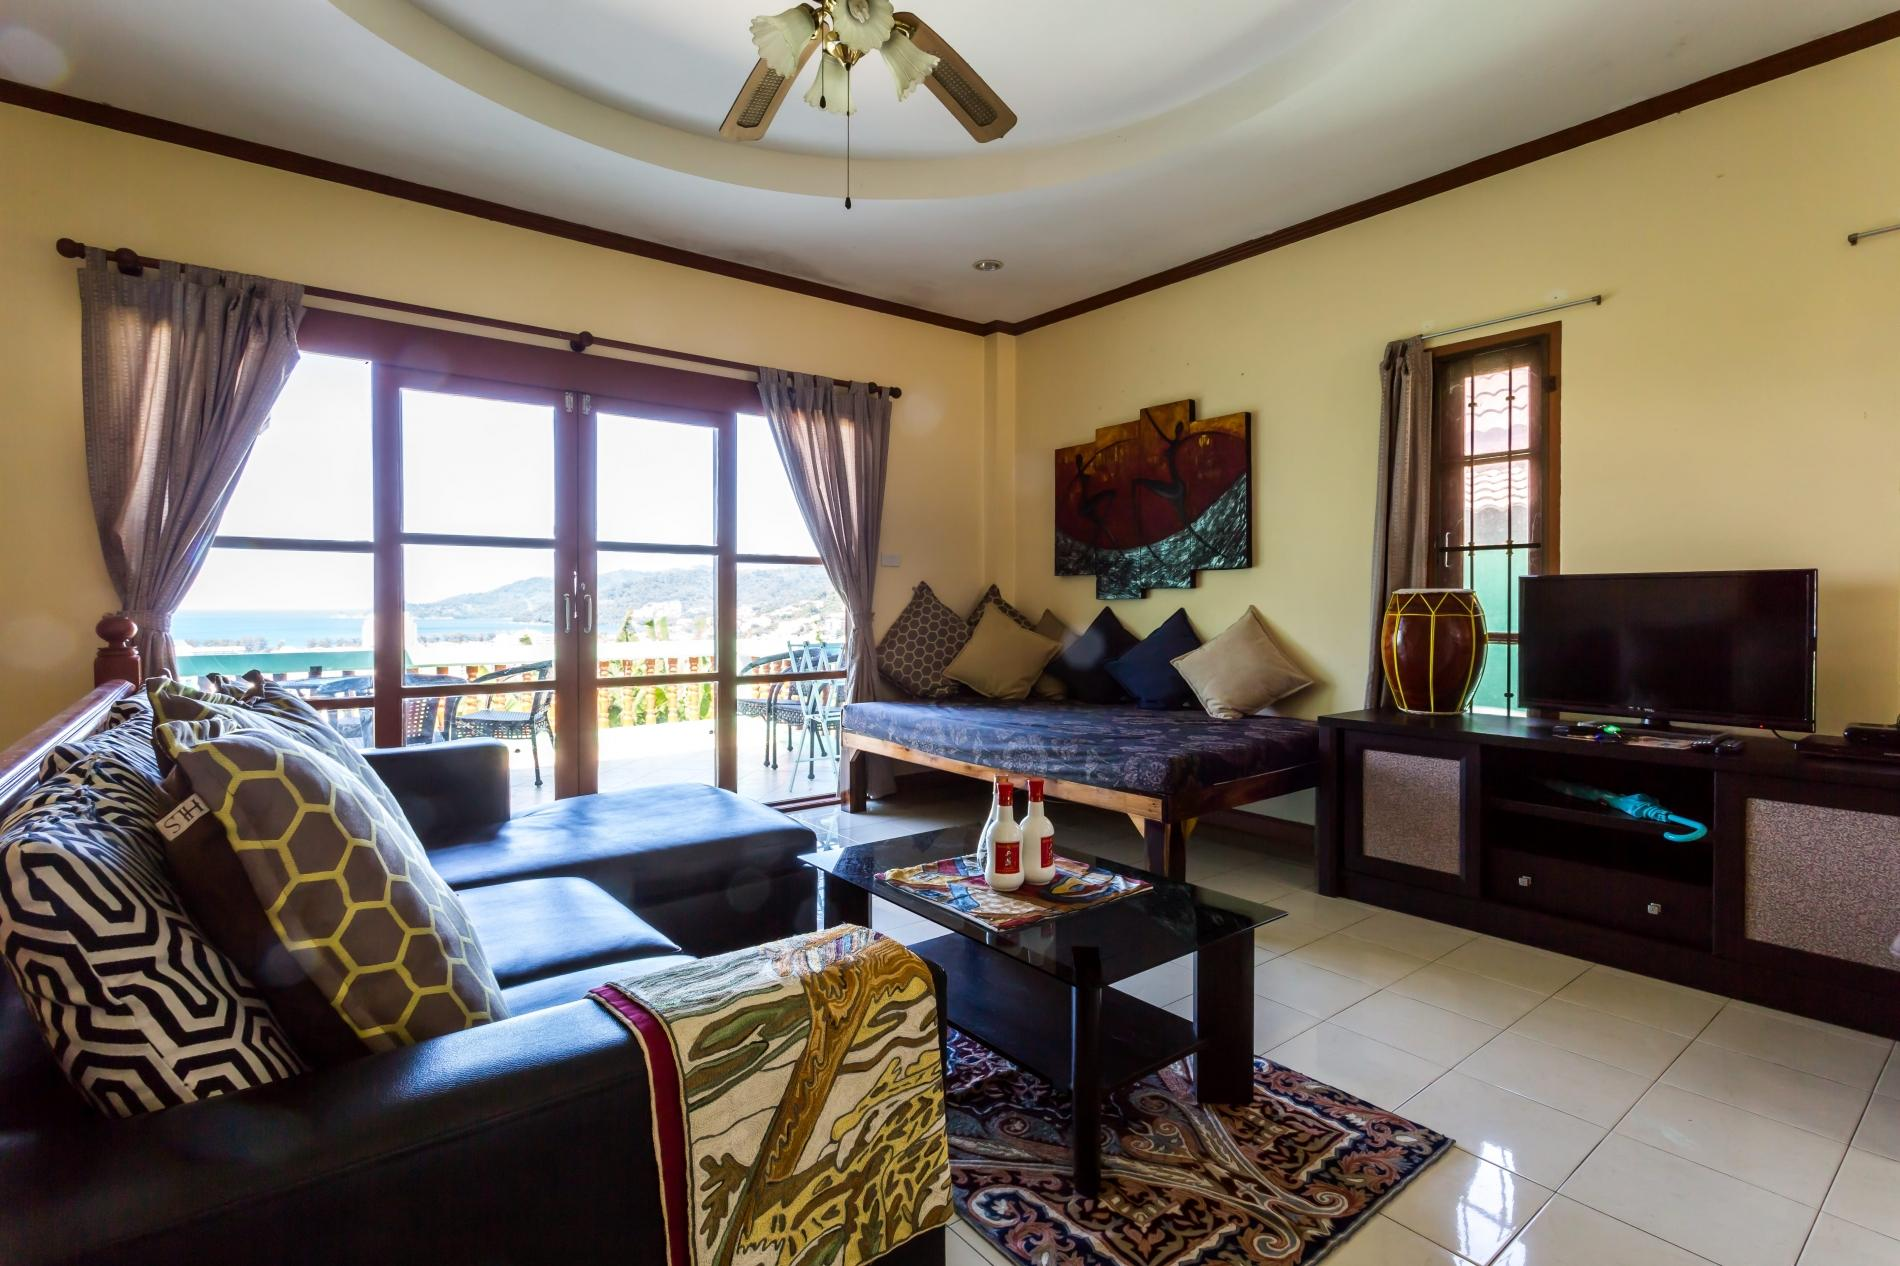 Apartment Vista Villa 1 - Seaview private pool villa in Patong for 9 people  photo 18444404